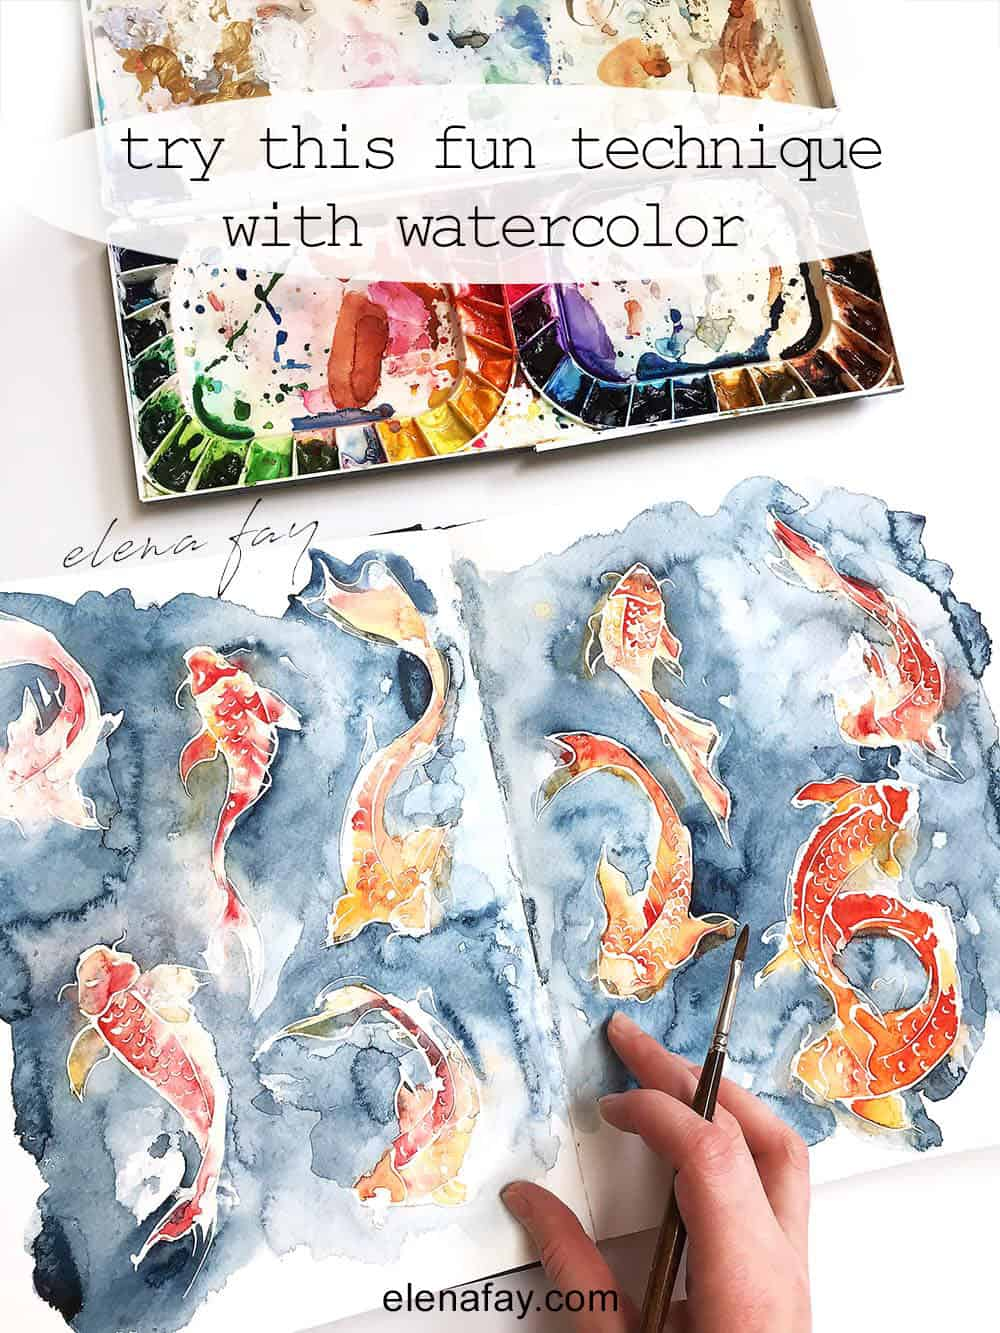 resist technique with watercolor, watercolor art by Elena Fay